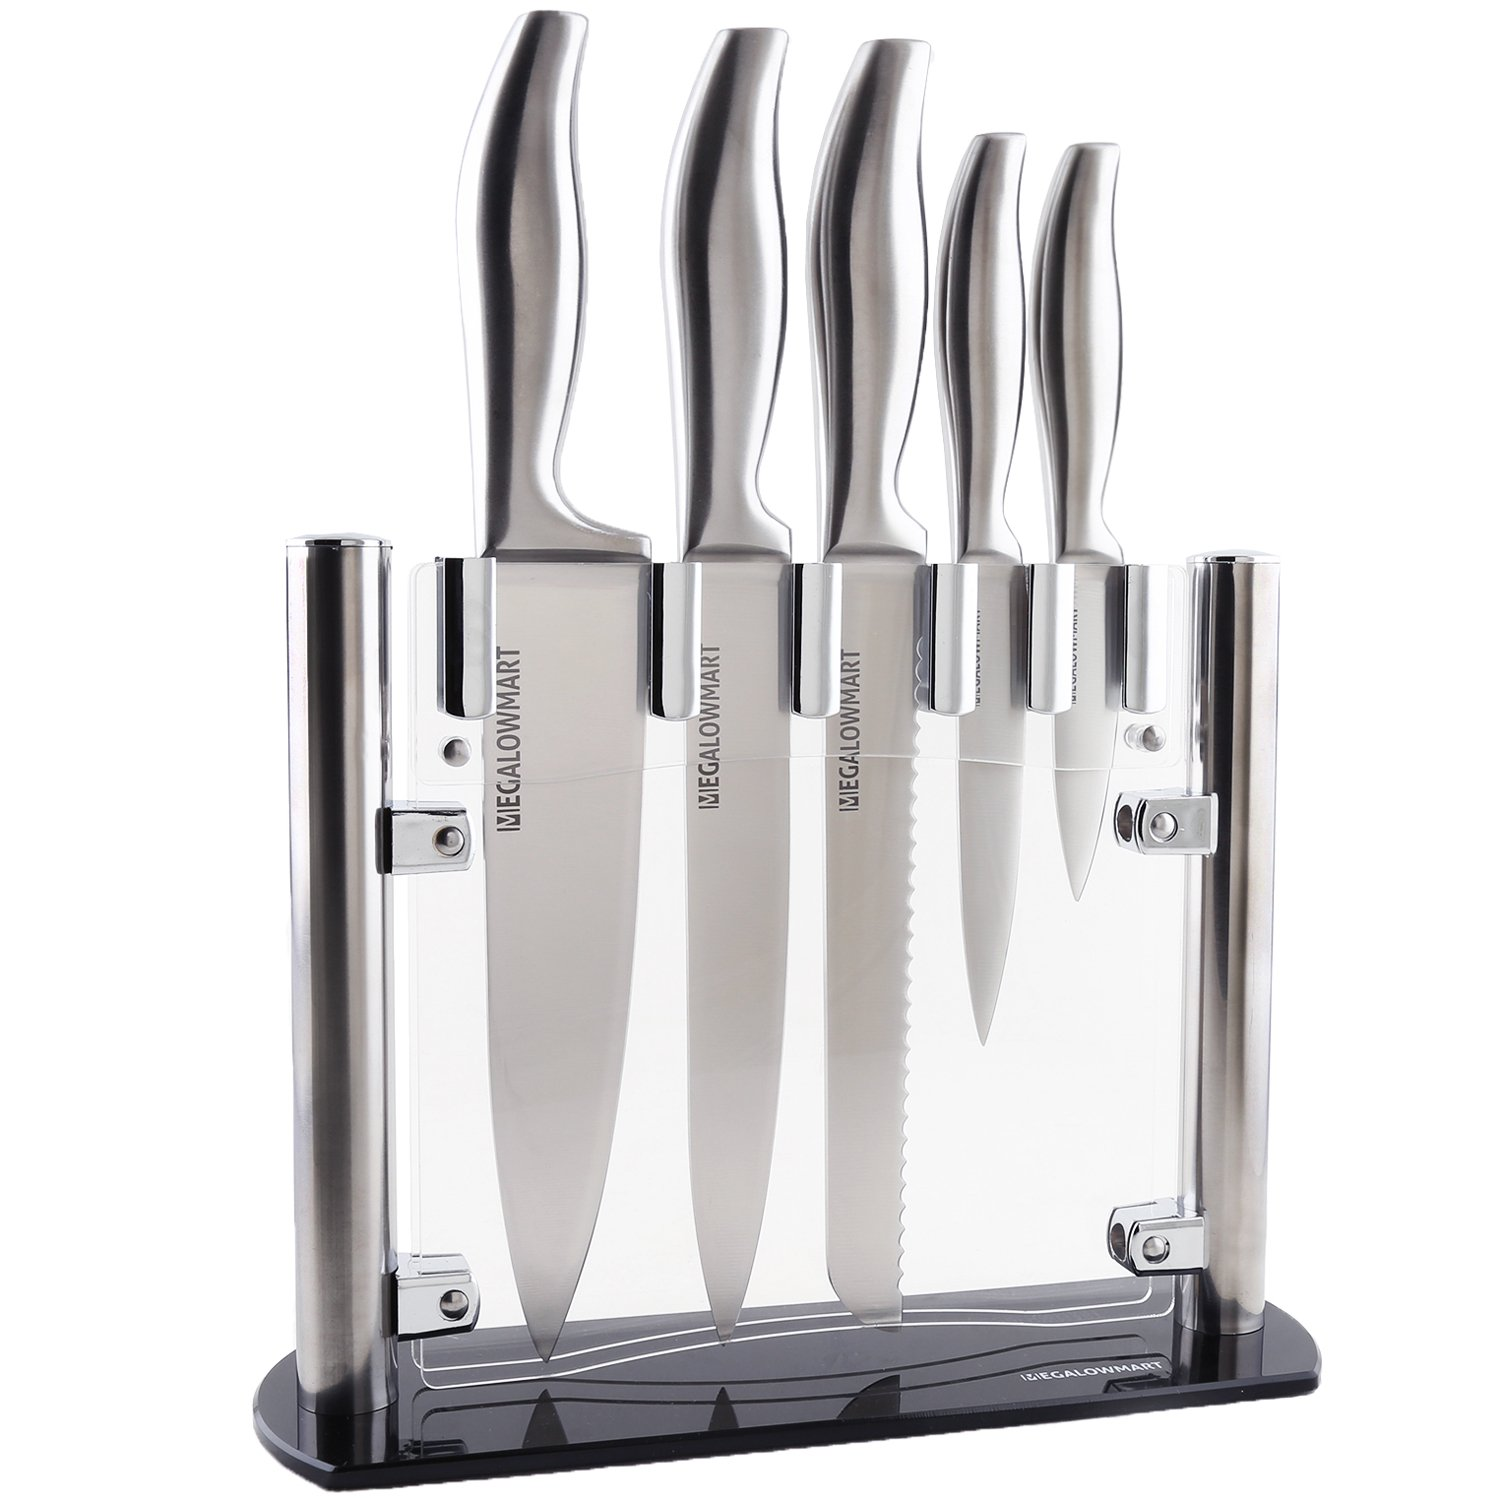 MEGALOWMART Professional 6 Piece Stainless Steel Kitchen Knife Set with Acrylic Stand